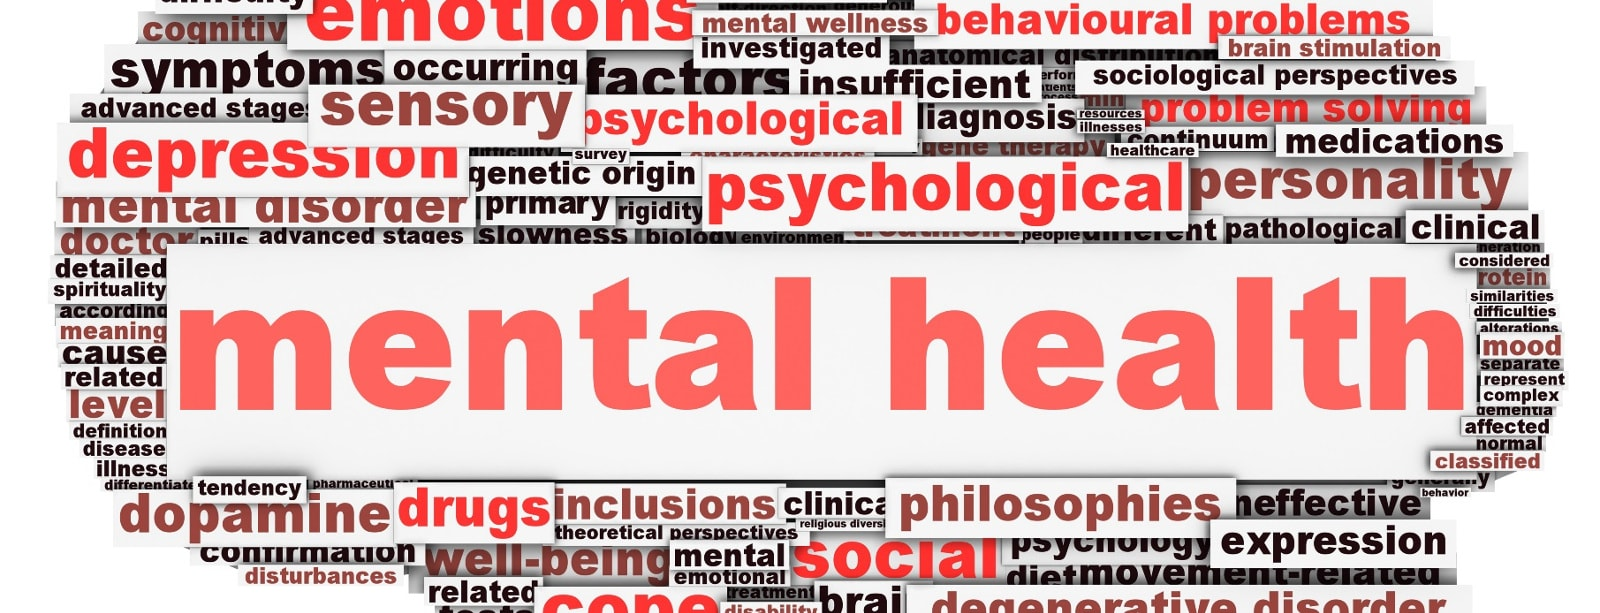 Tele Behavioral Health Reduces The Cost Of Mental Illnesses Amwell